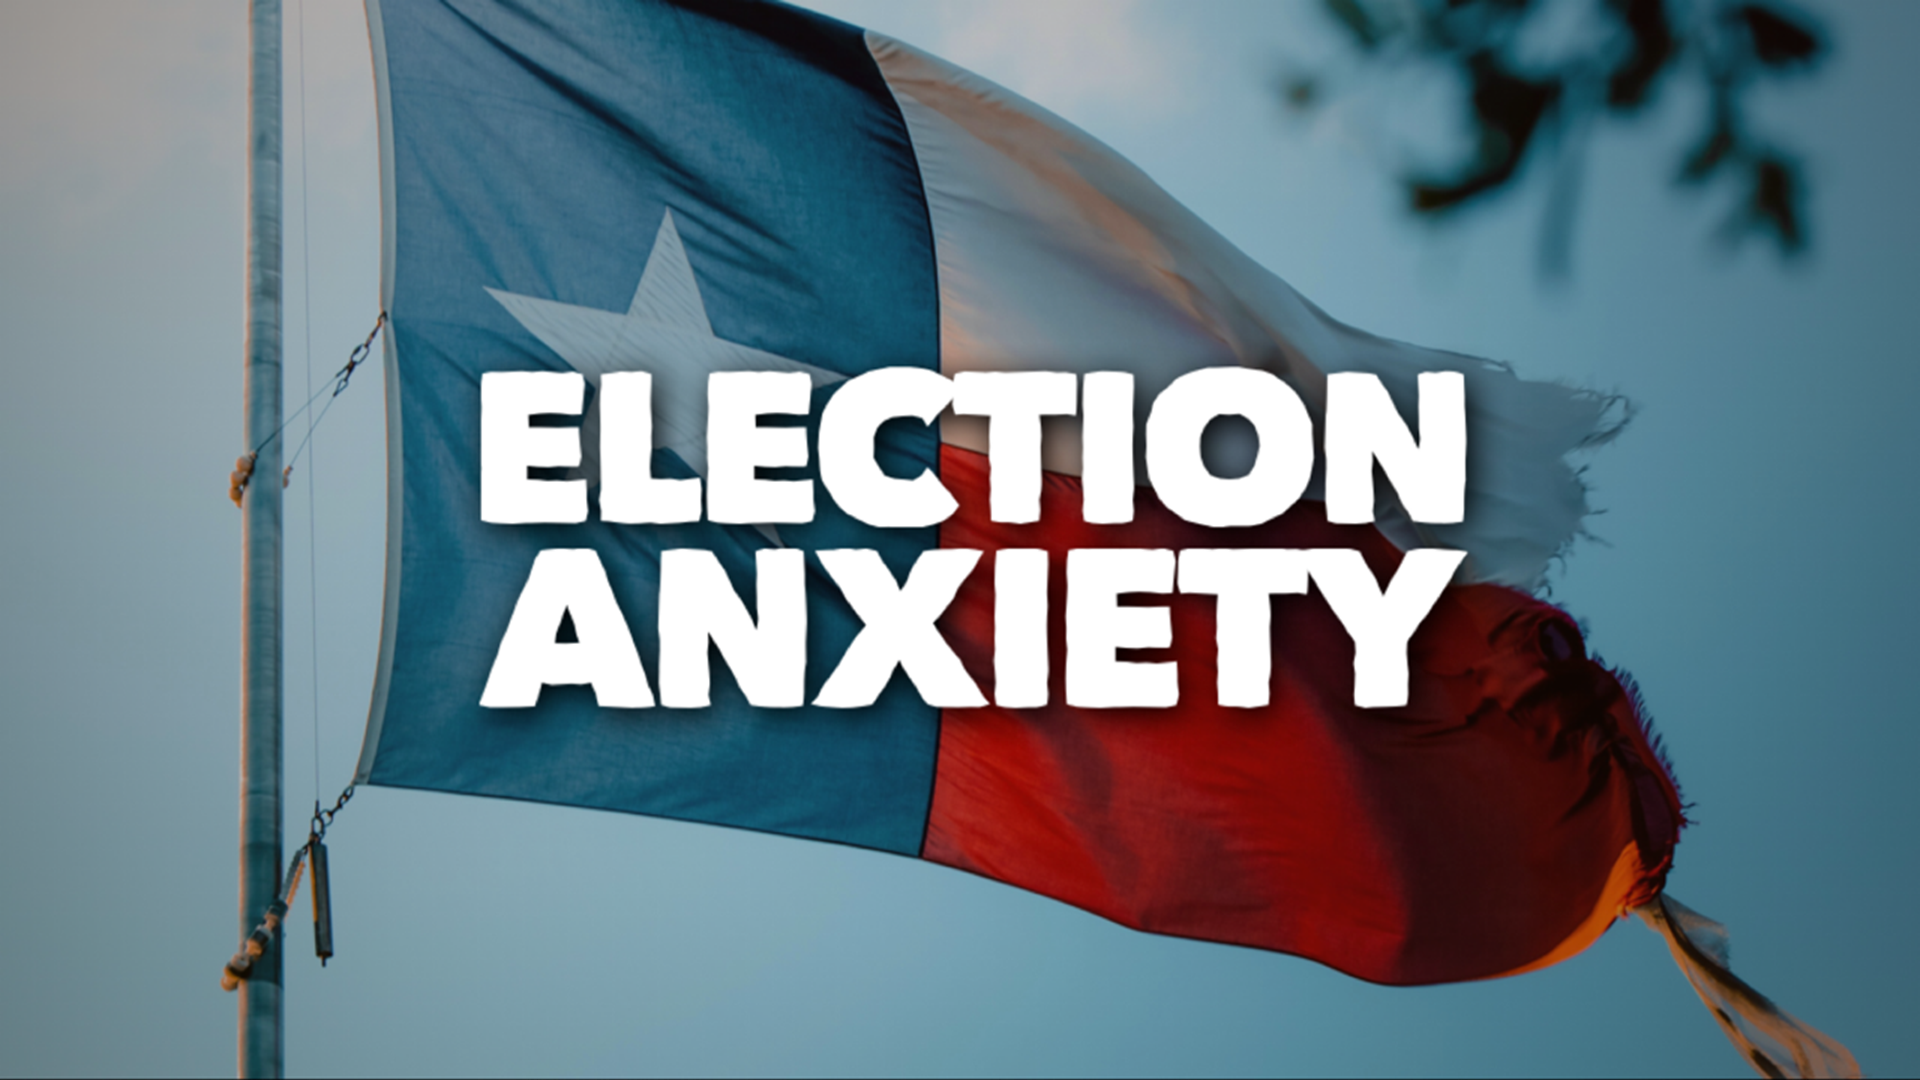 Anxiety is rising about election day how it will all turn out | wfaa.com